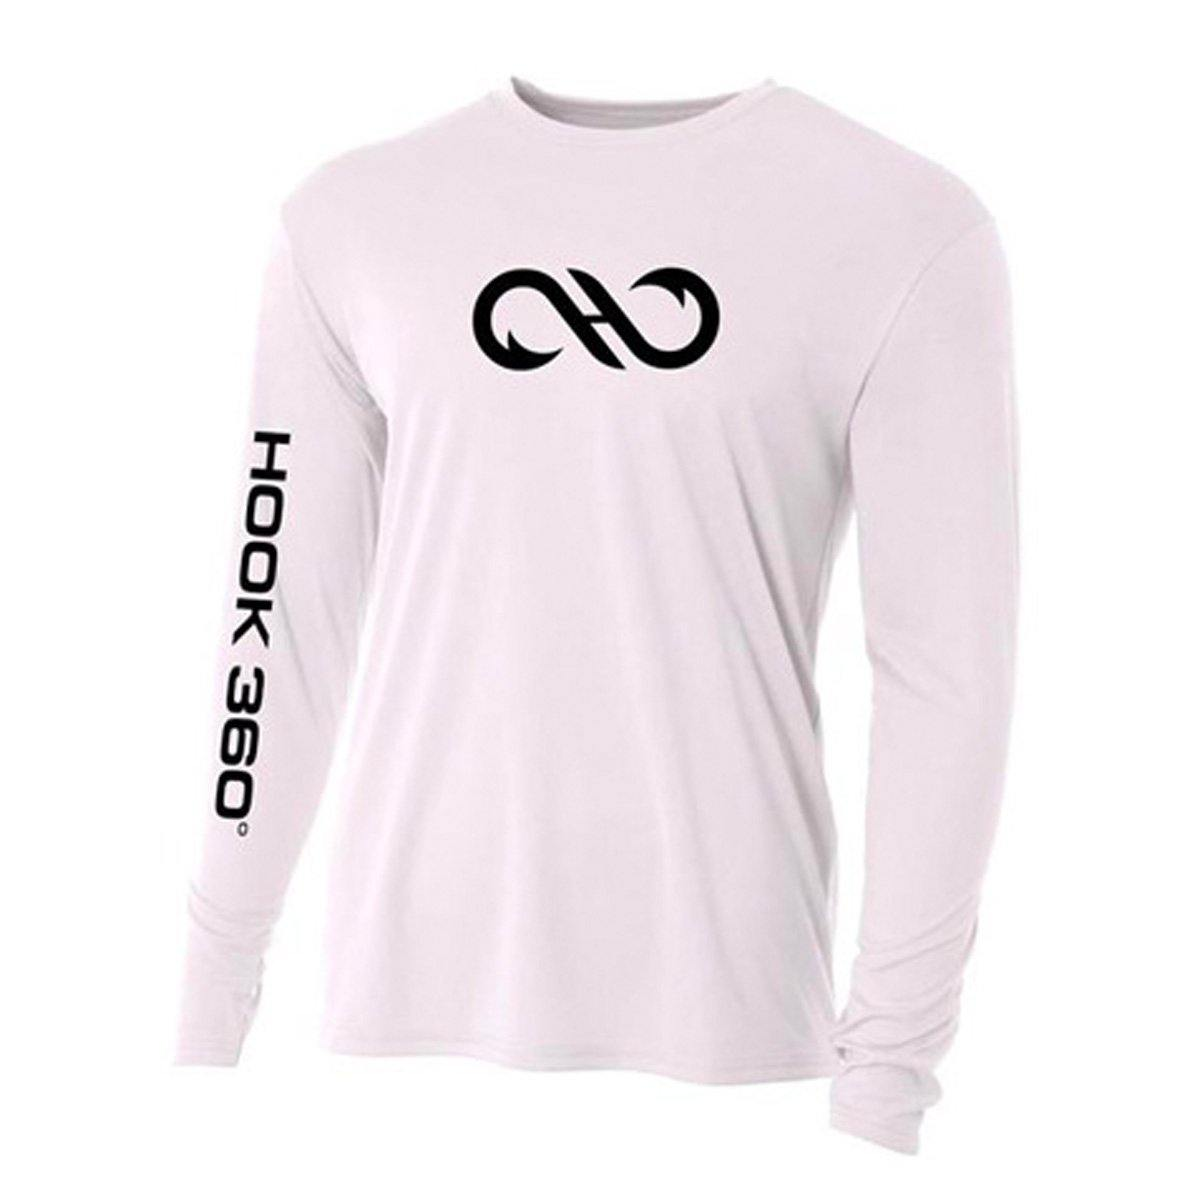 Tournament Performance Shirt